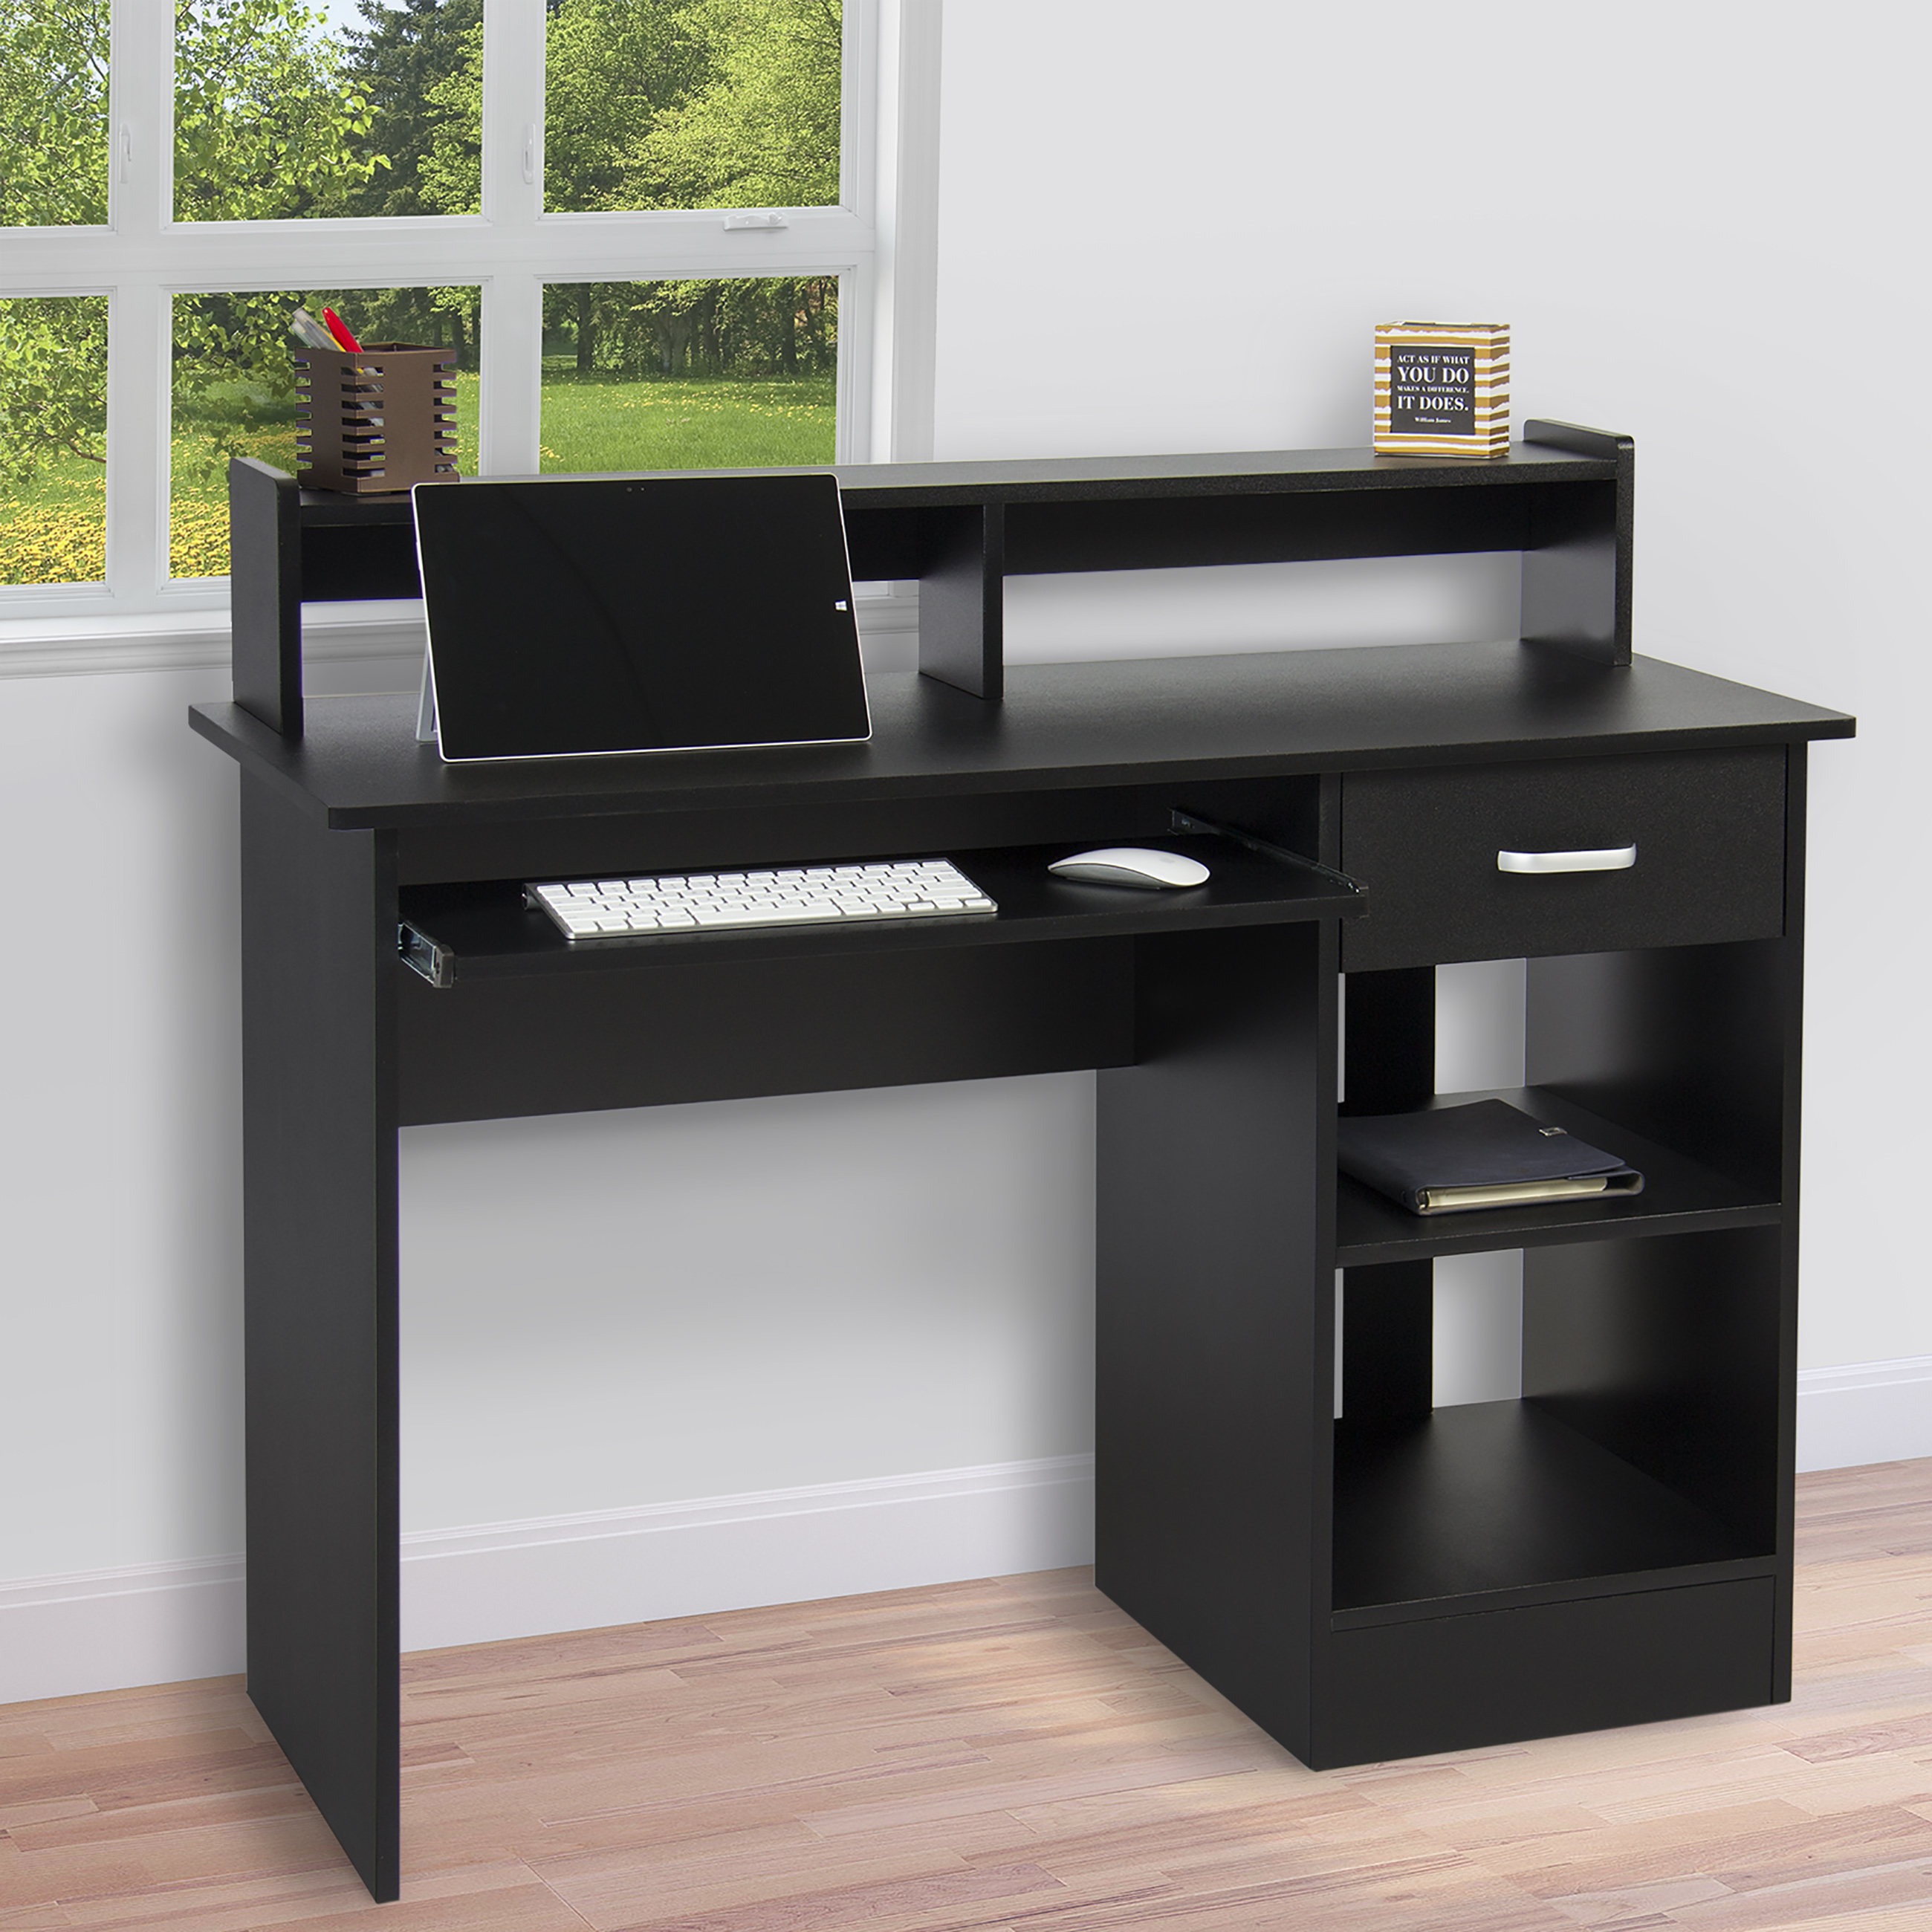 best home office furniture. Best Choice Products Computer Desk Home Laptop Table College Office Furniture Work Station - Black